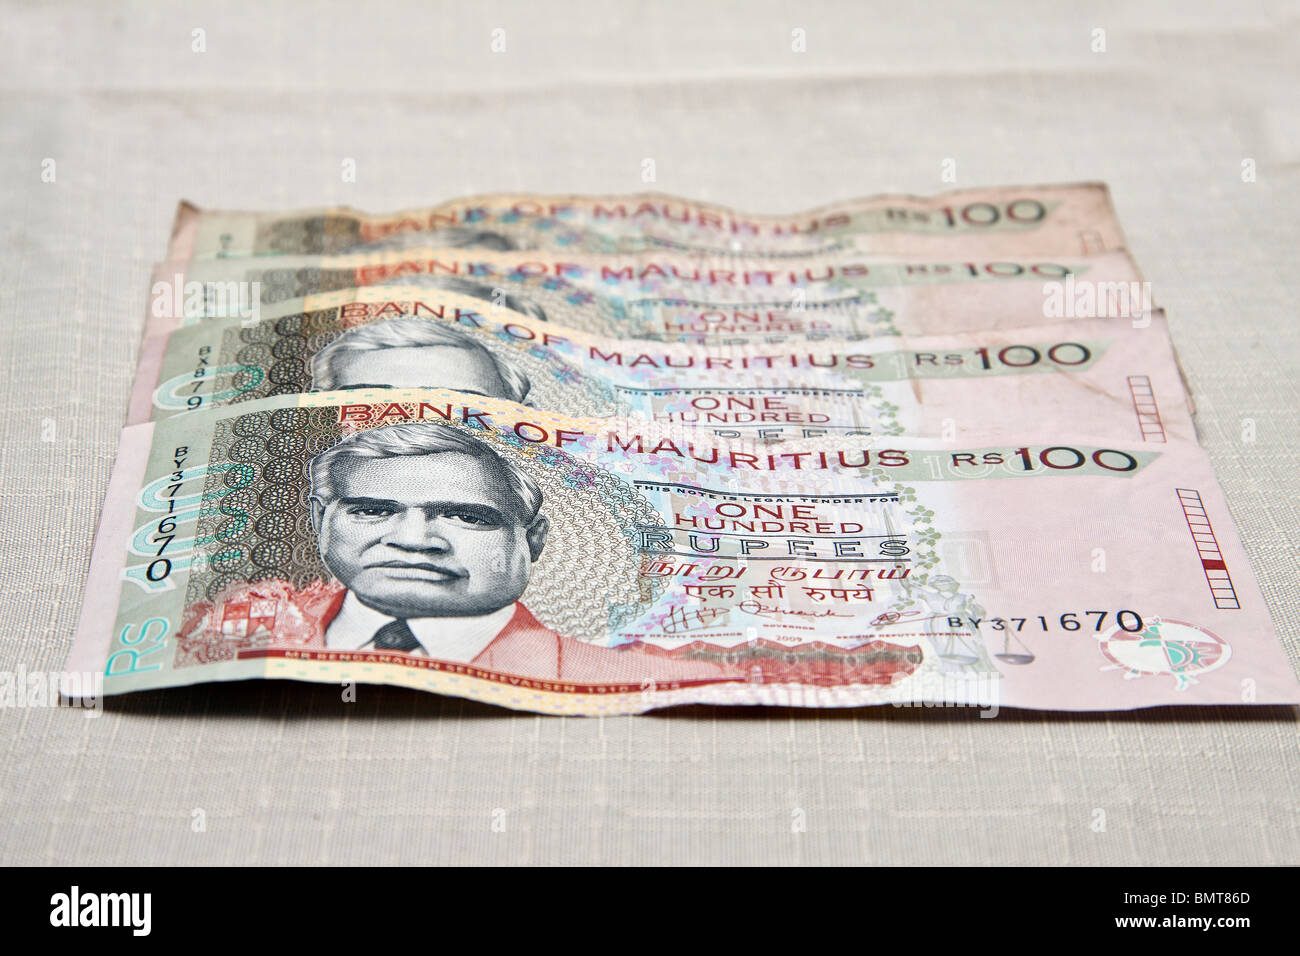 Mauritian currency,one hundred rupees notes. - Stock Image